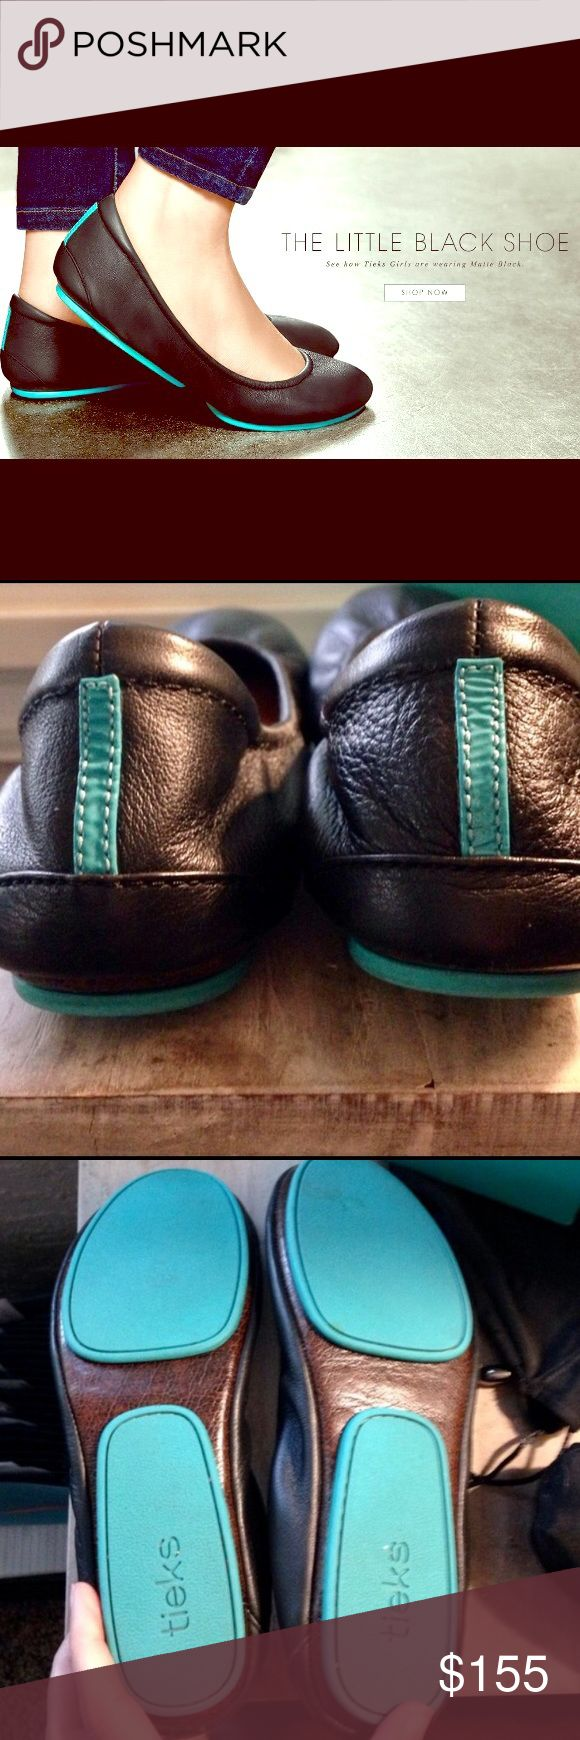 Black Leather Tieks Classic Tieks in black & EUC! Worn a few times, but just not for me. Comes with original box, bags & flower! Price firm unless bundled! Tieks Shoes Flats & Loafers